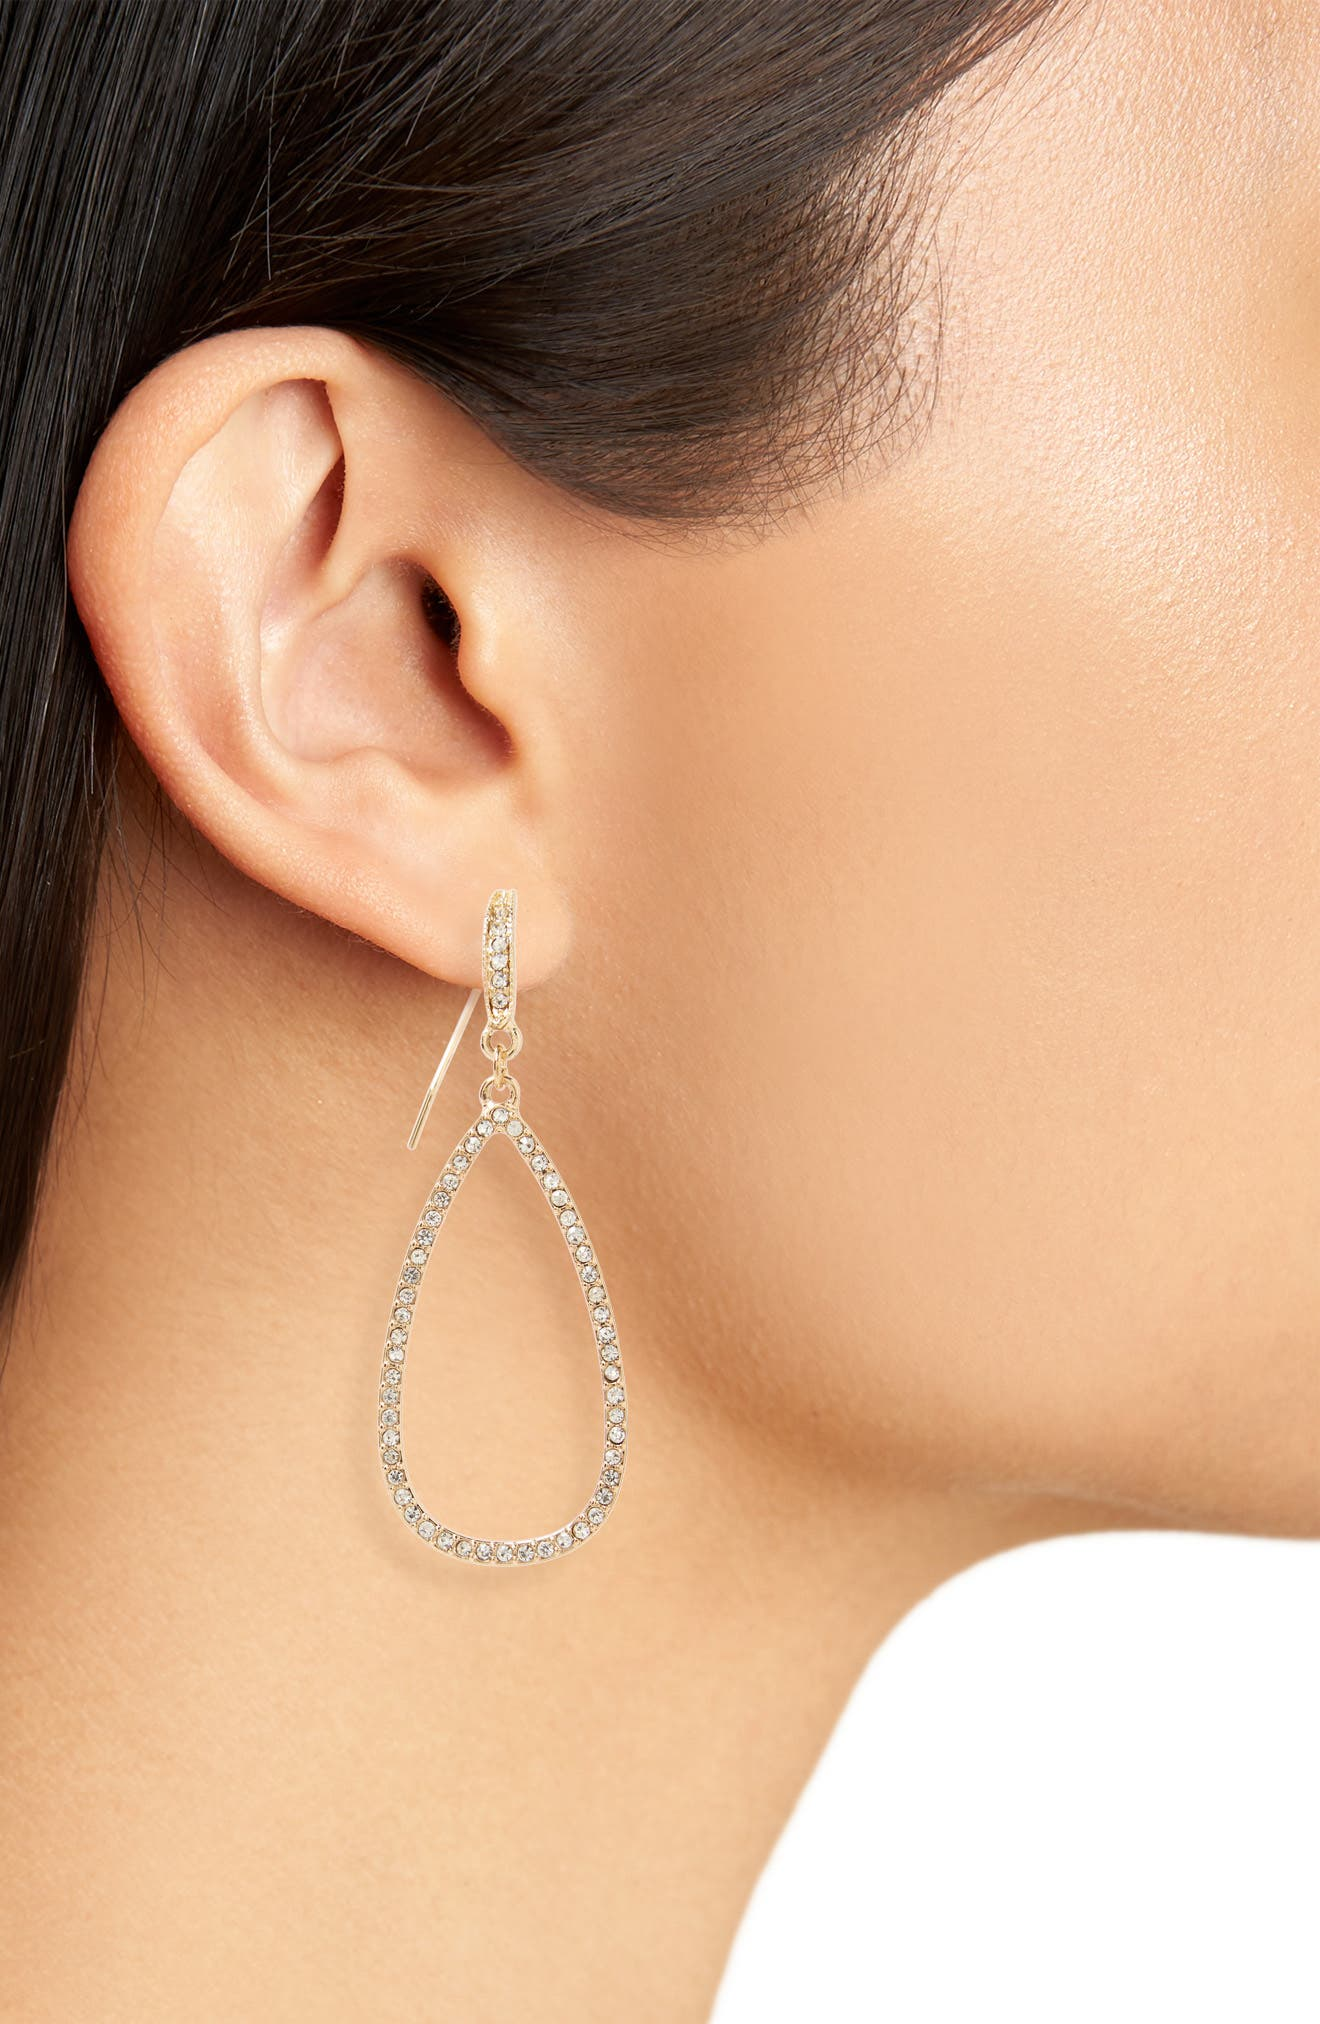 Crystal Teardrop Earrings,                             Alternate thumbnail 2, color,                             710